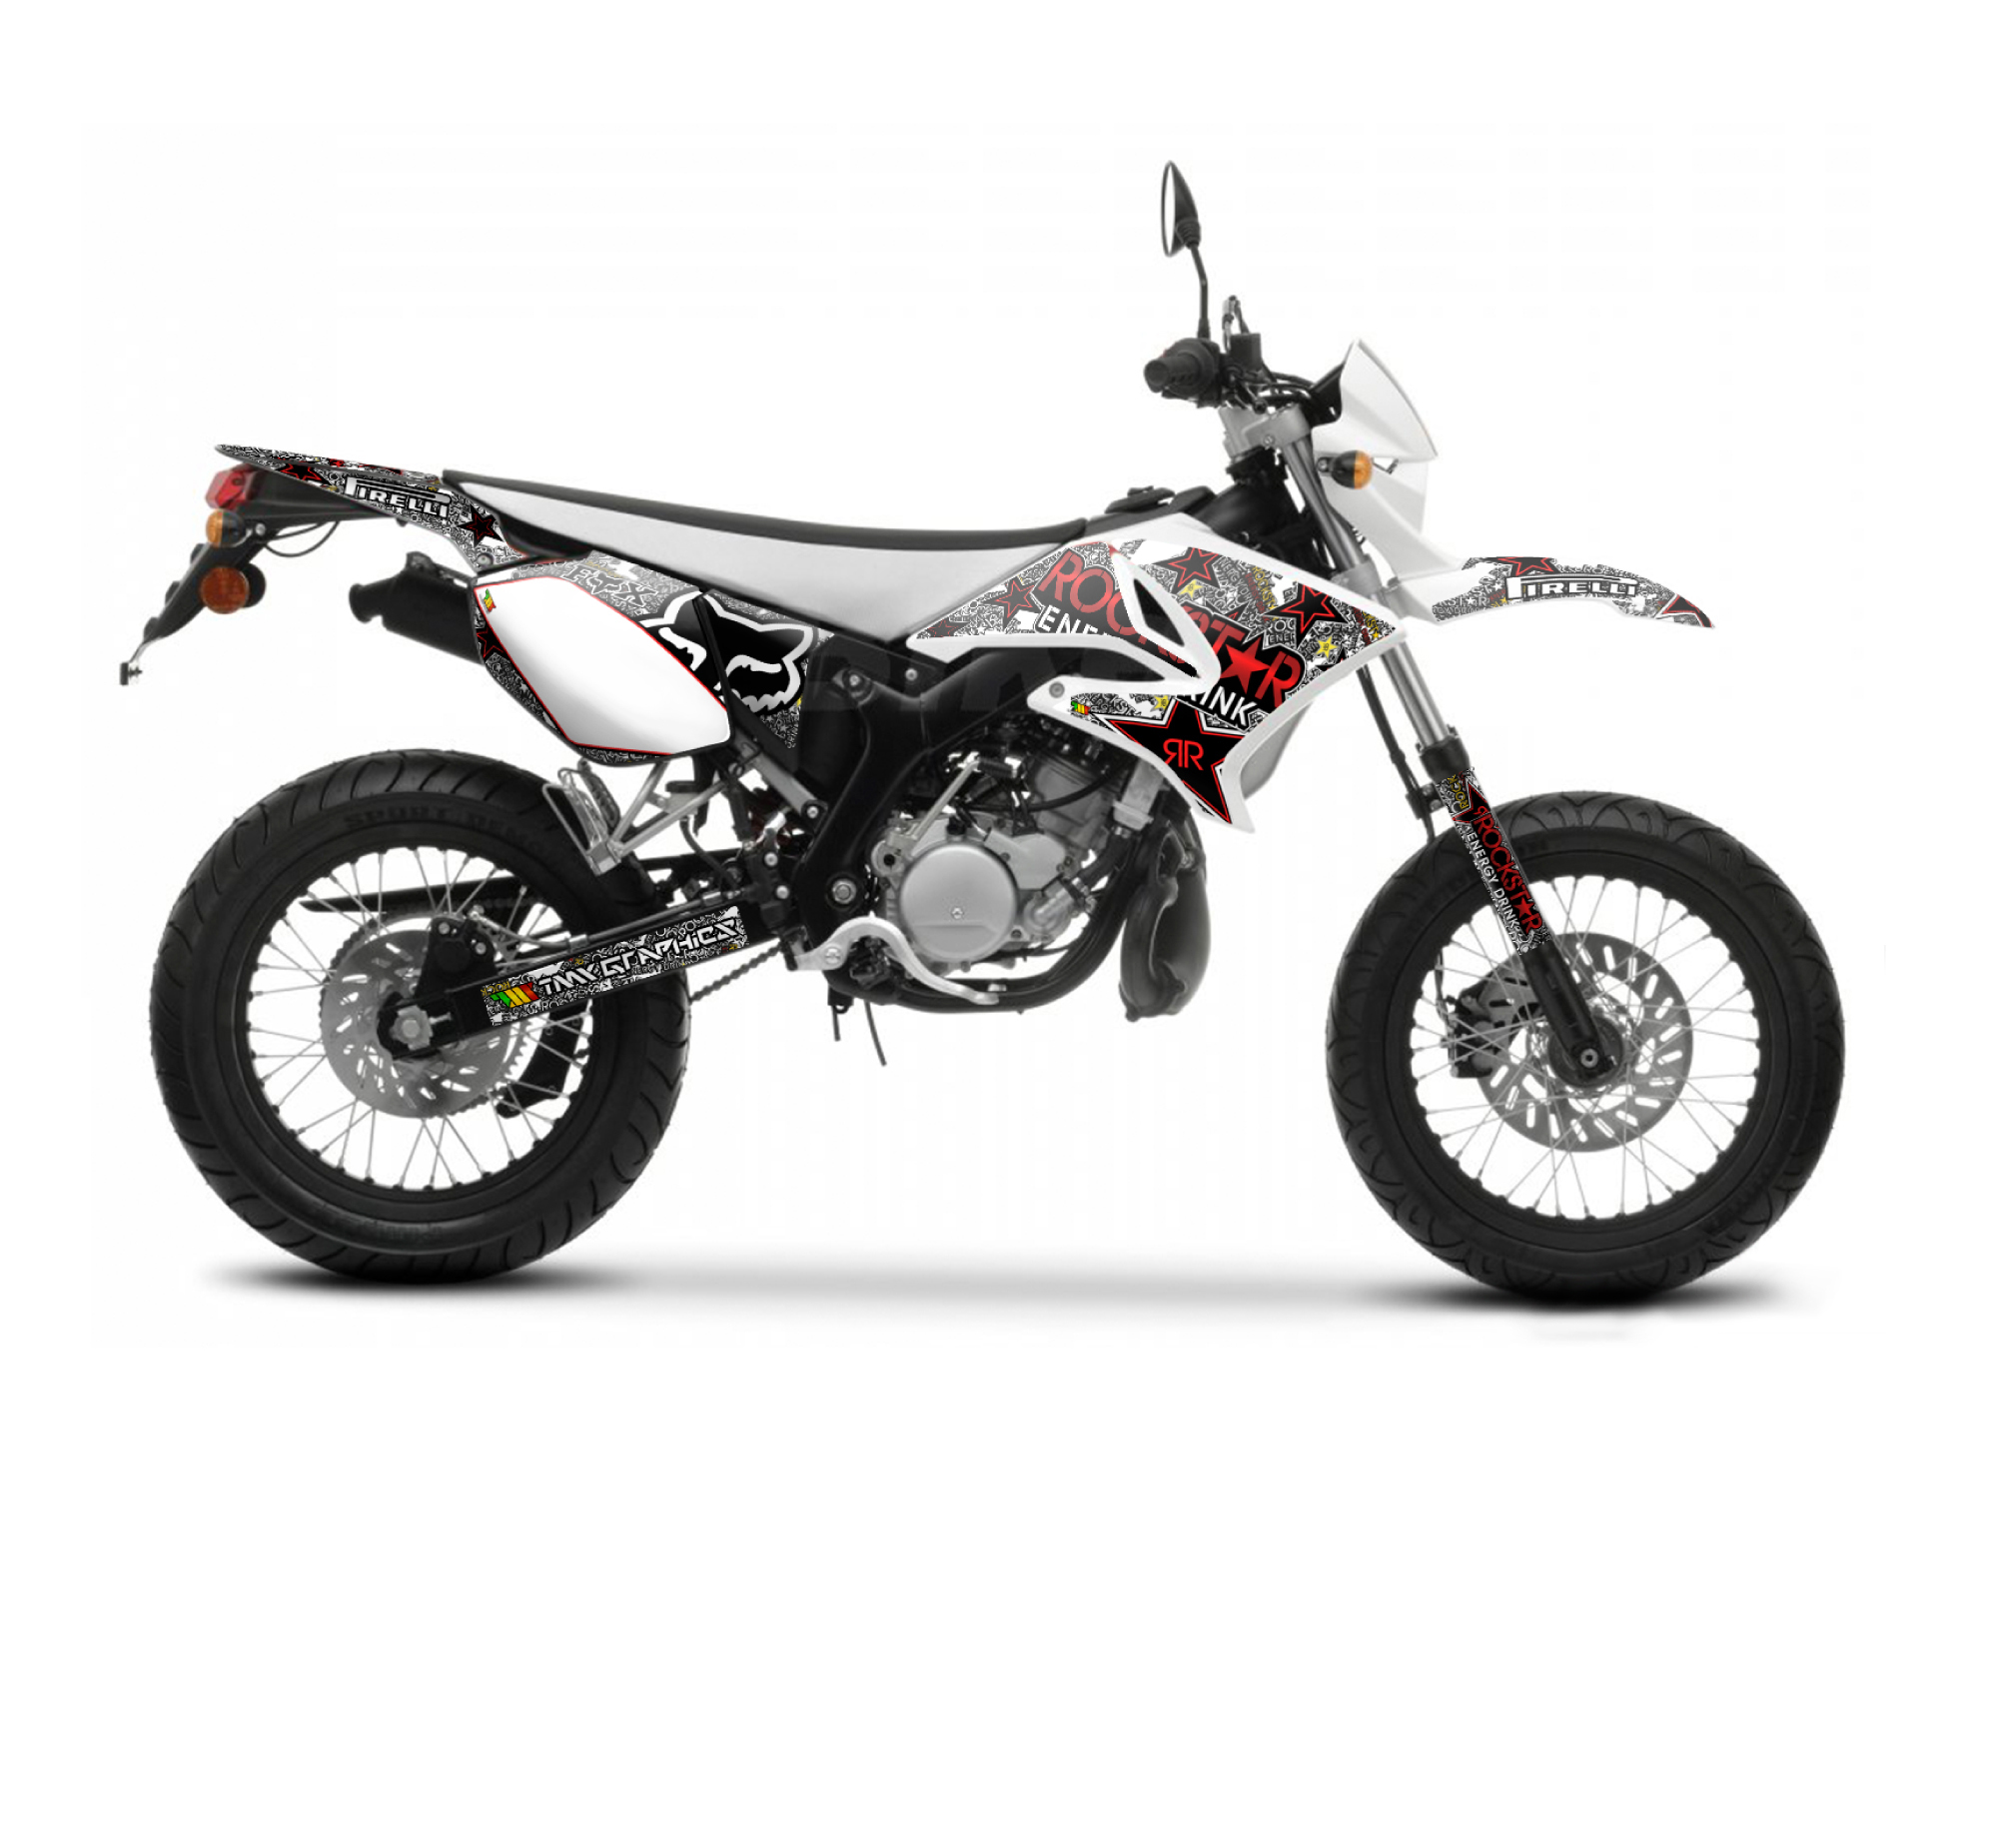 yamaha dt 50 x r rockstar fox graphics series white tmx graphics. Black Bedroom Furniture Sets. Home Design Ideas